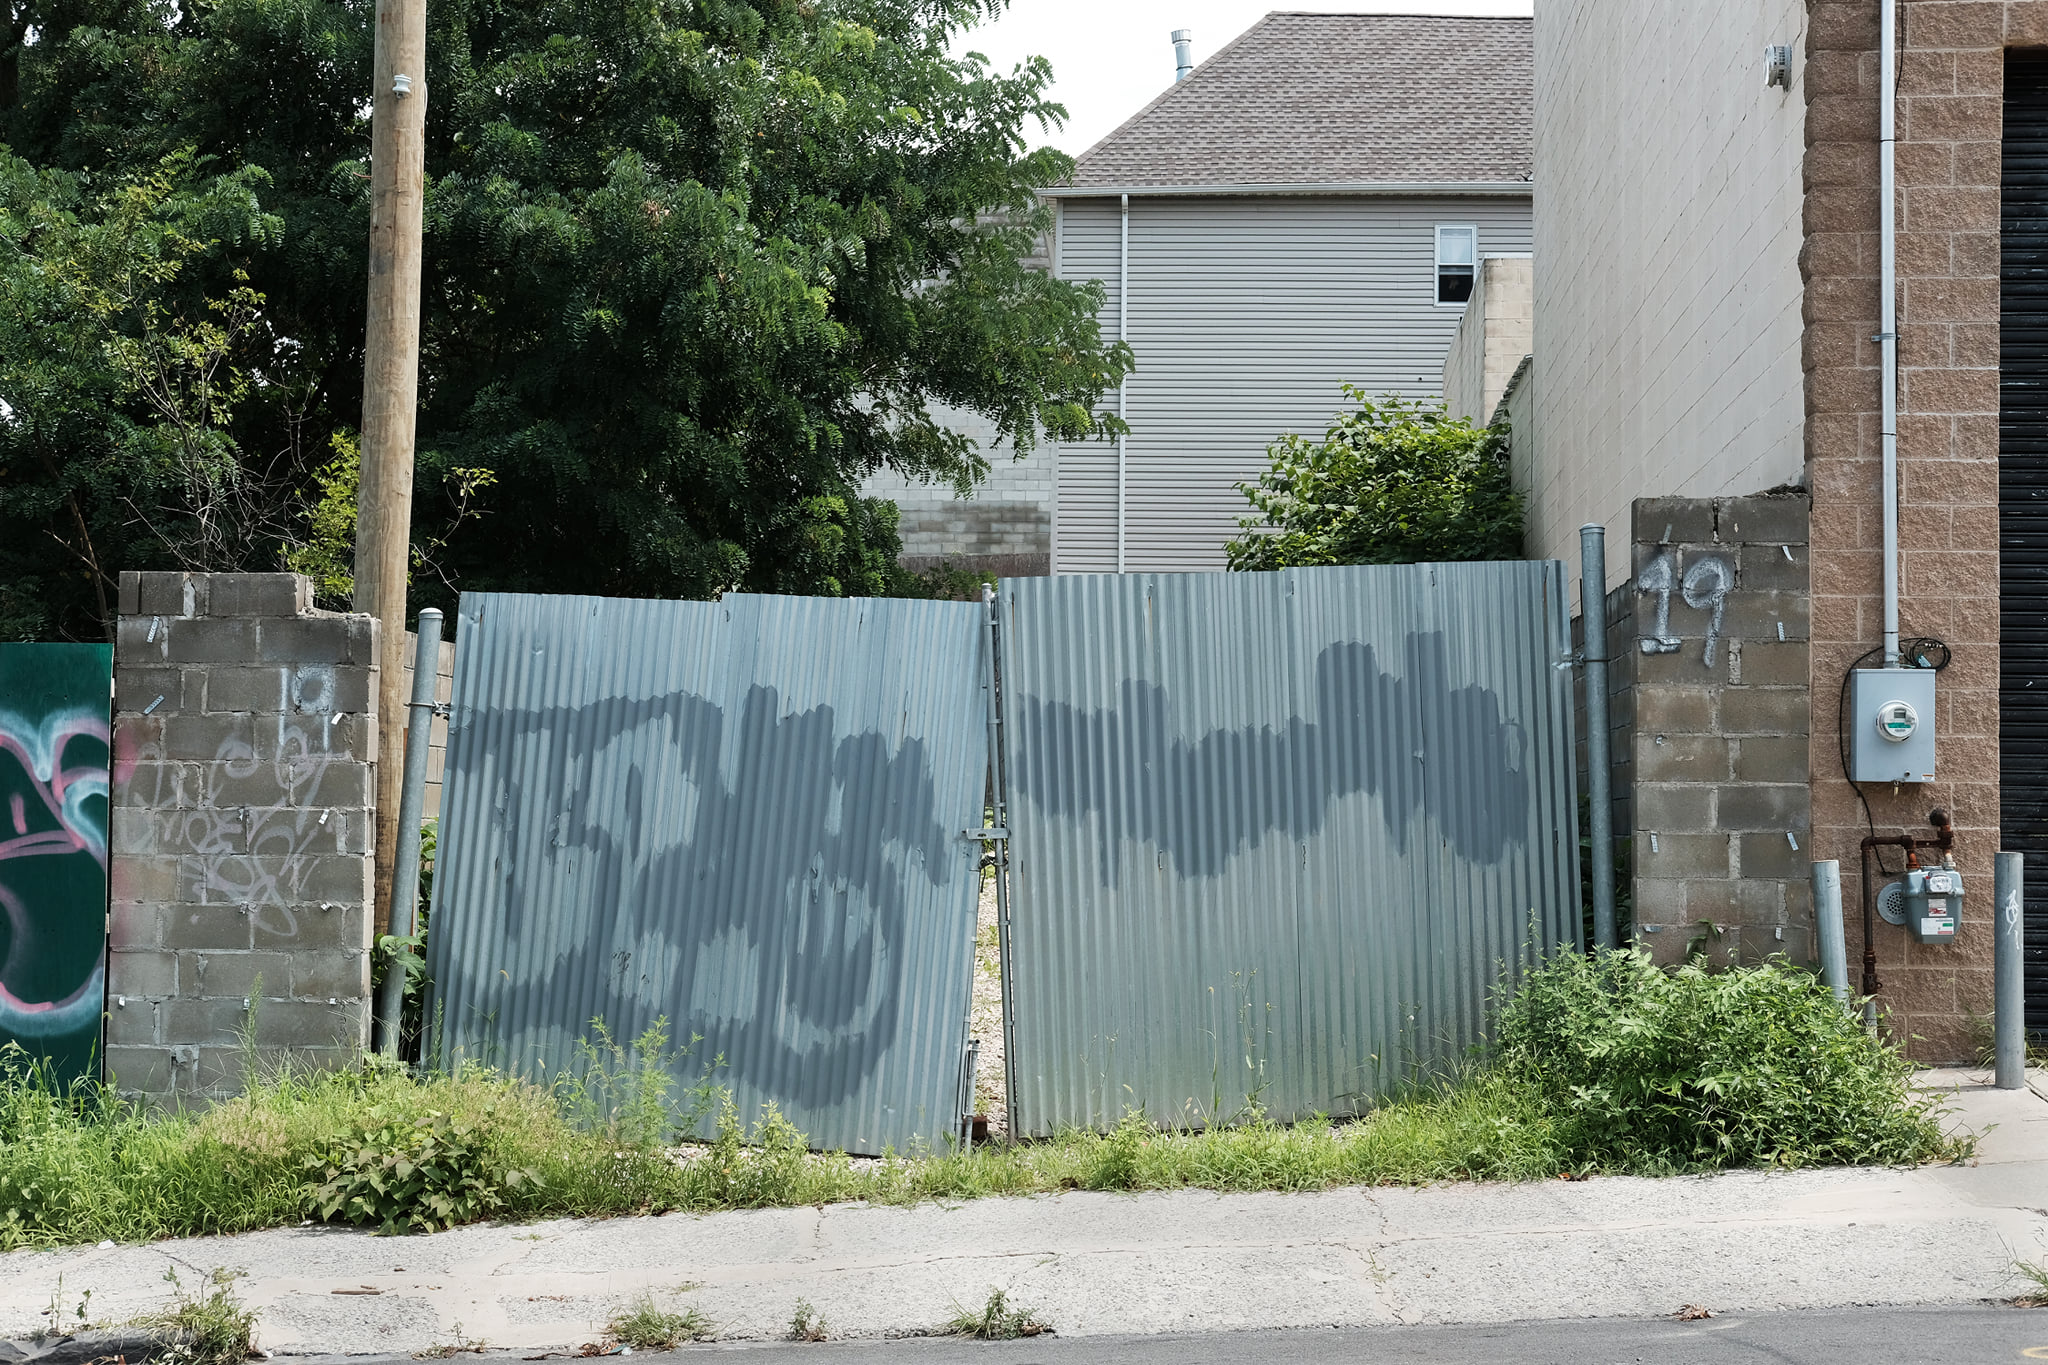 4 Corrugated Metal Gates and Two Meters